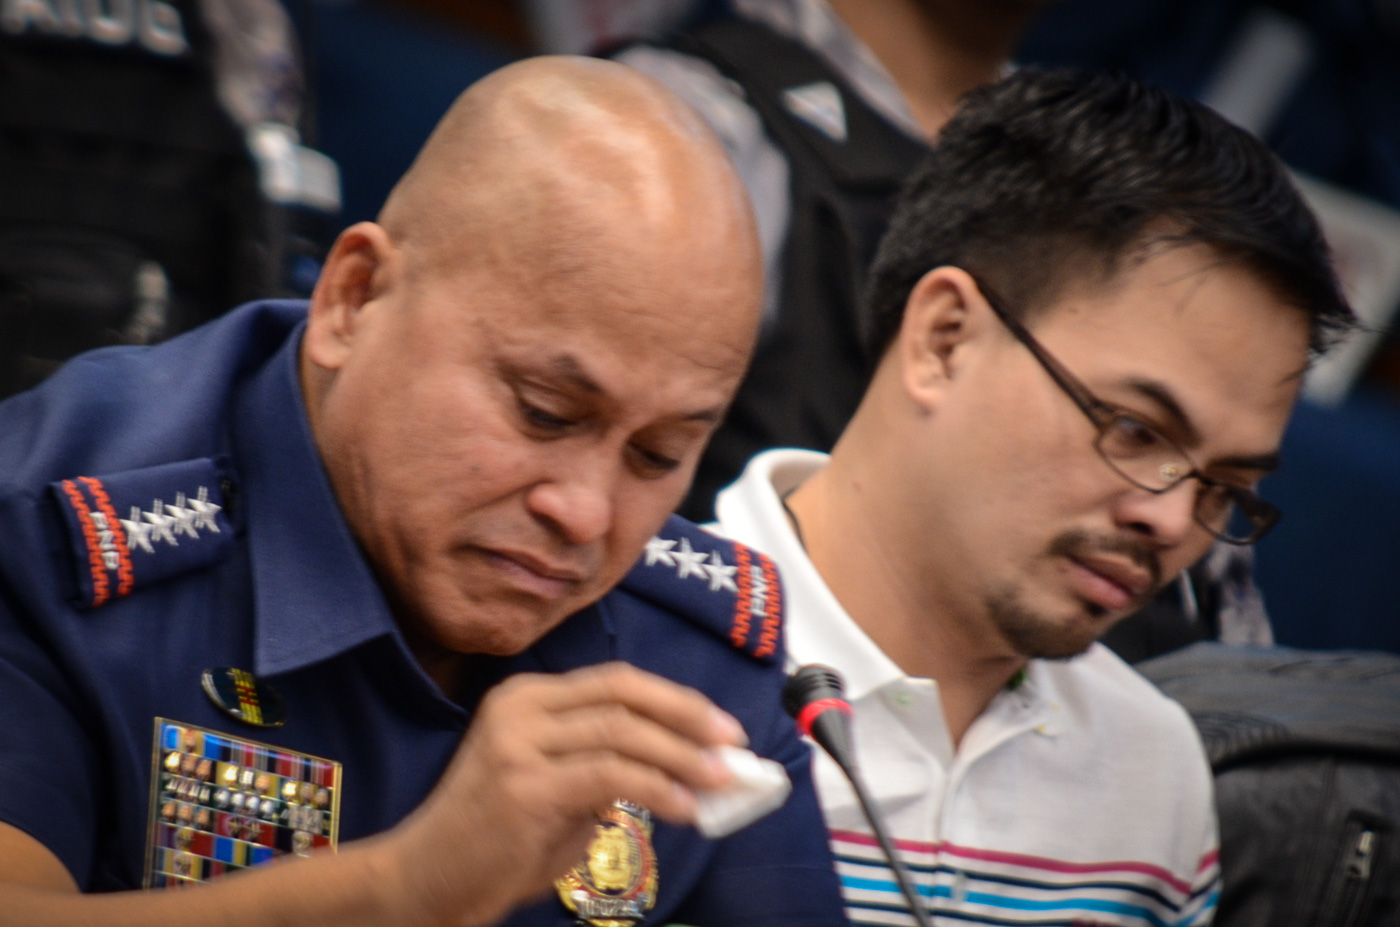 EMOTIONAL. In this file photo, PNP chief Director General Ronald dela Rosa turns emotional at the Senate inquiry into the death of Albuera Mayor Rolando Espinosa Sr, November 23, 2016. File photo by LeAnne Jazul/Rappler